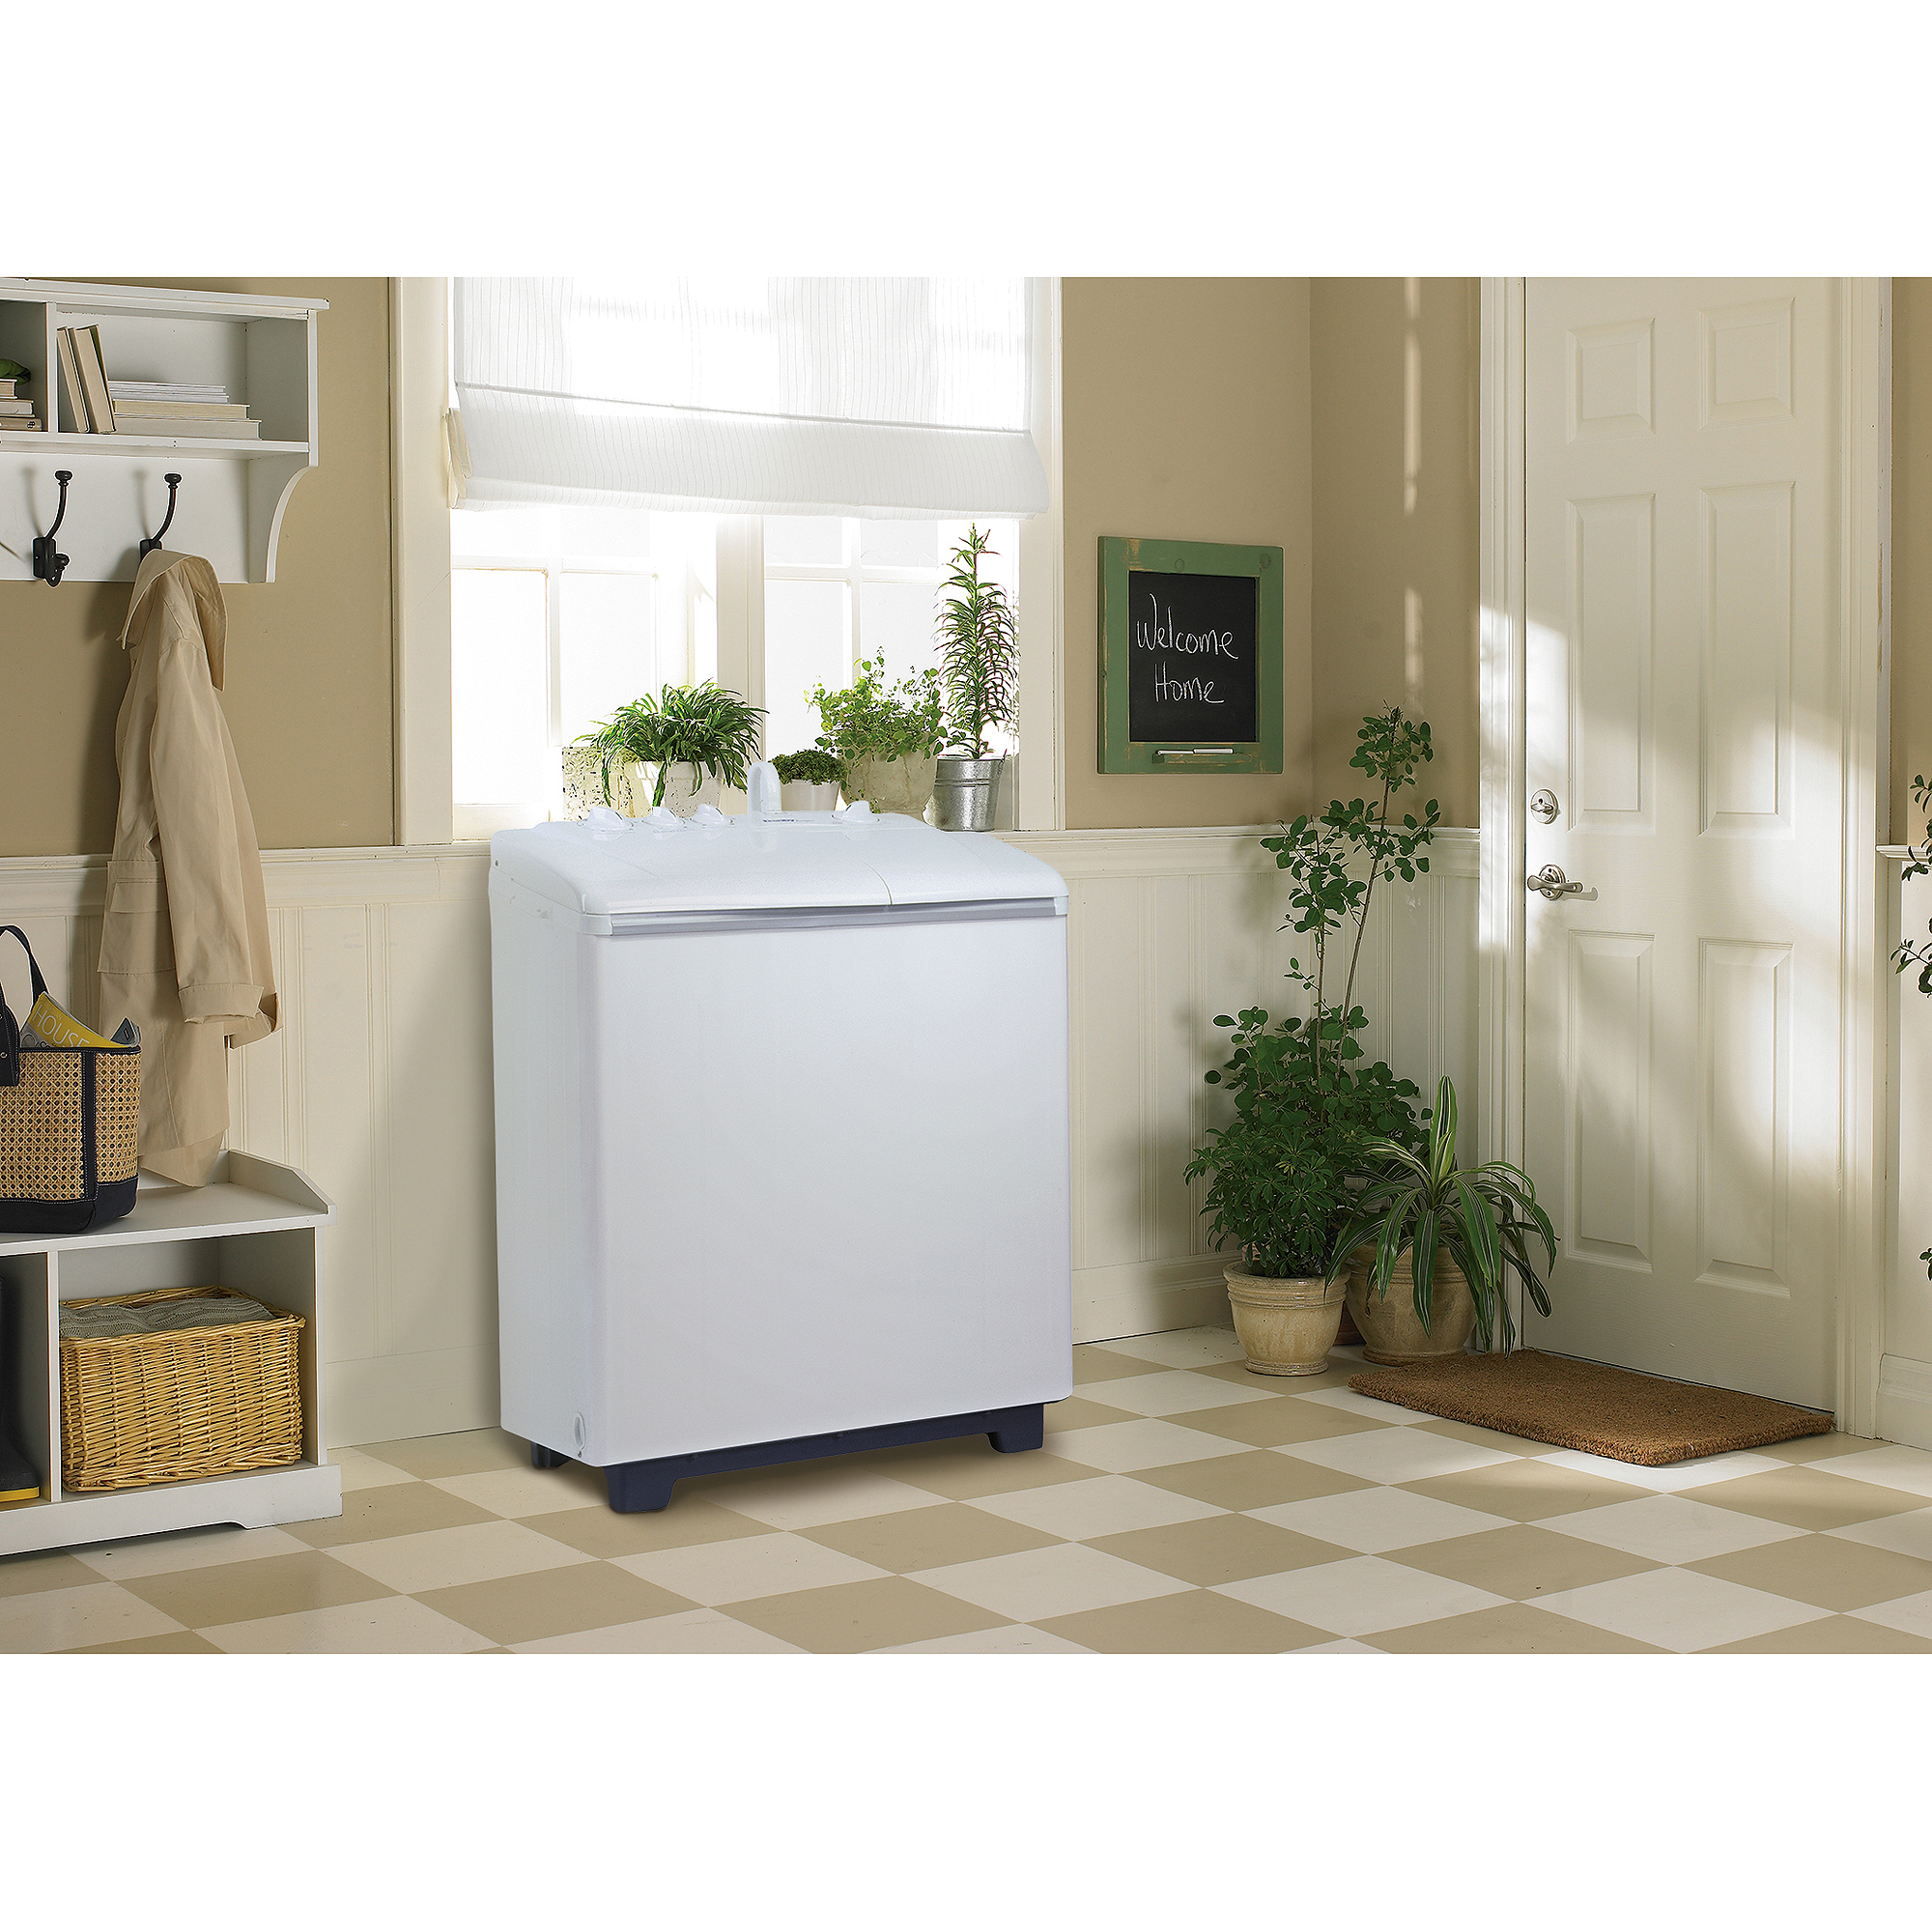 Danby 2.26 Cu Ft Twin Tub Washing Machine With Spin Dry, White   Walmart.com